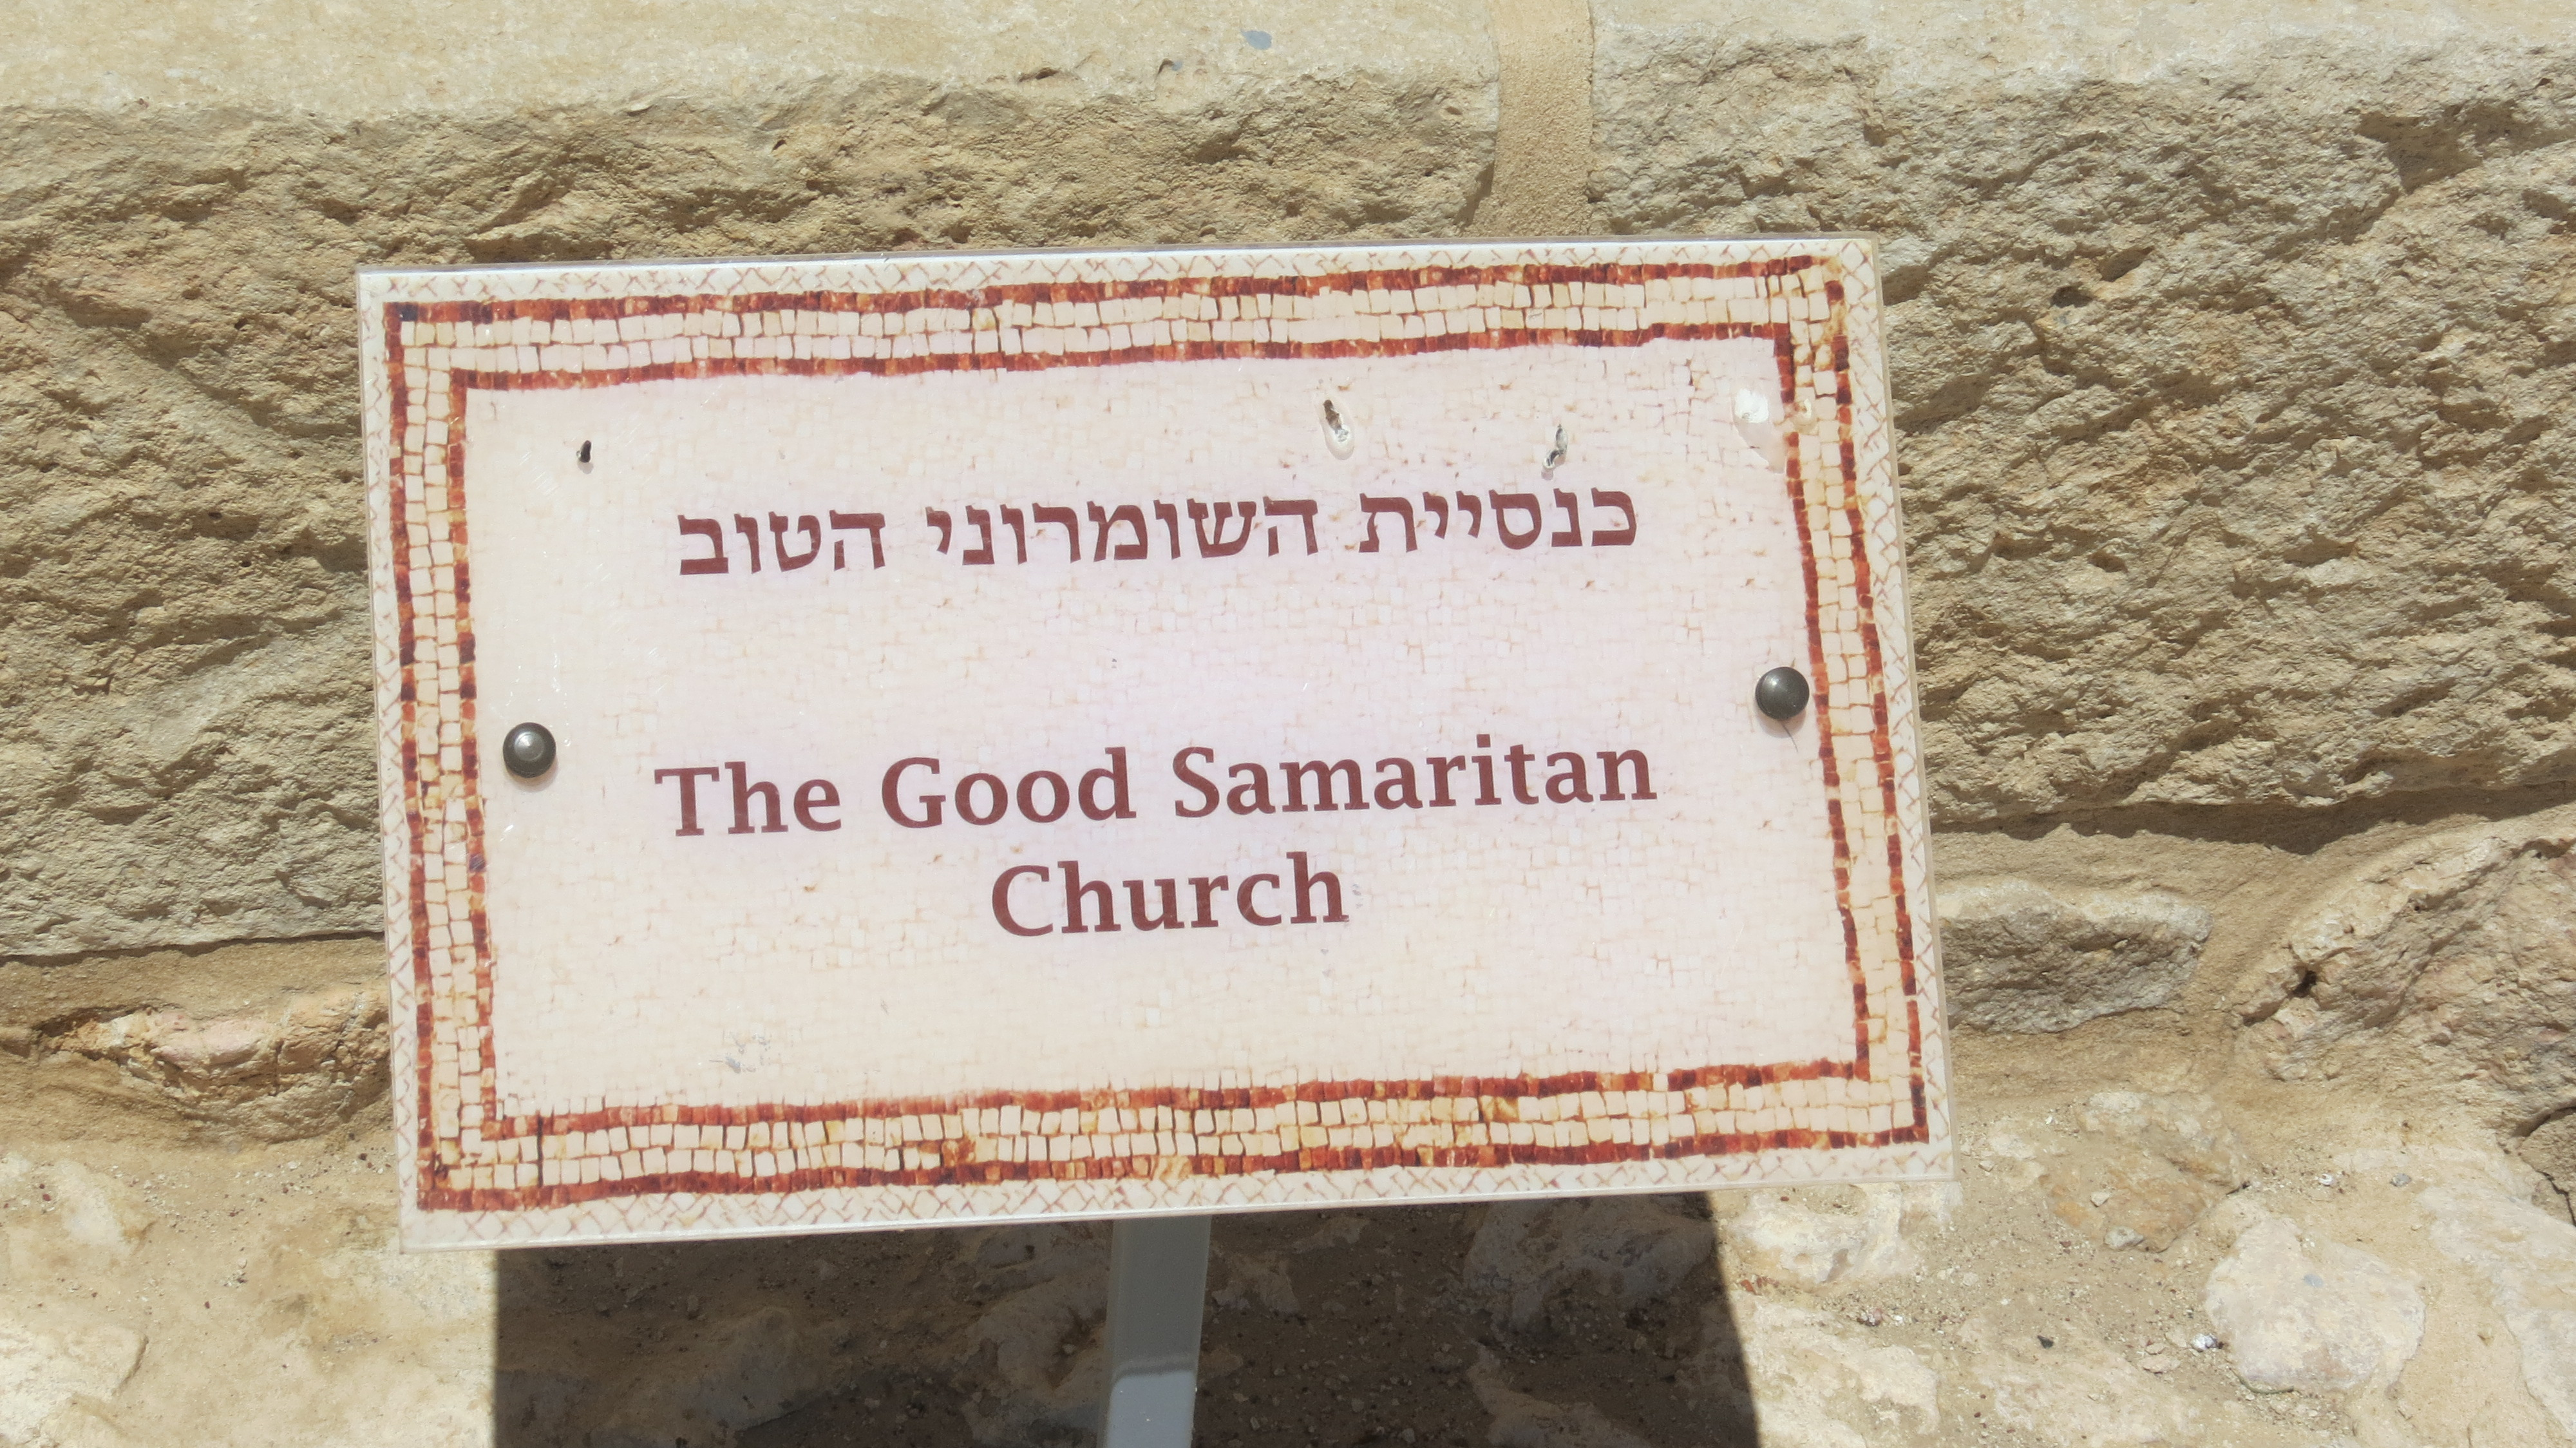 The Inn of the Good Samaritan